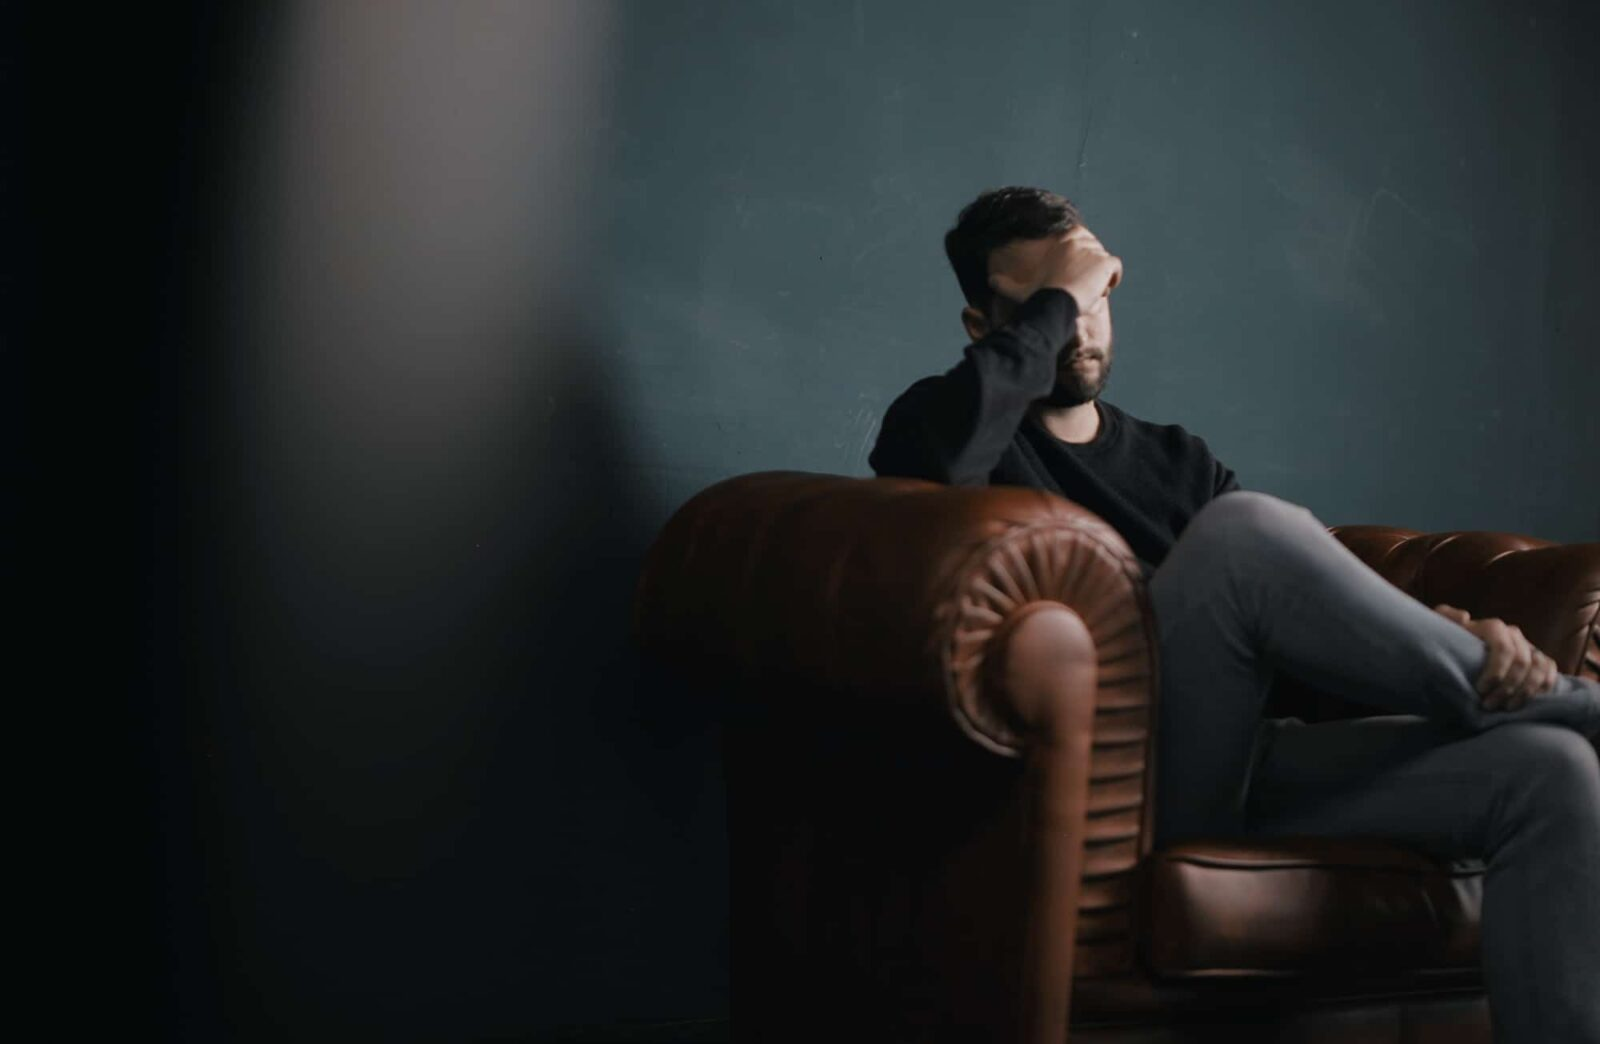 man-sitting-on-brown-couch-against-wall